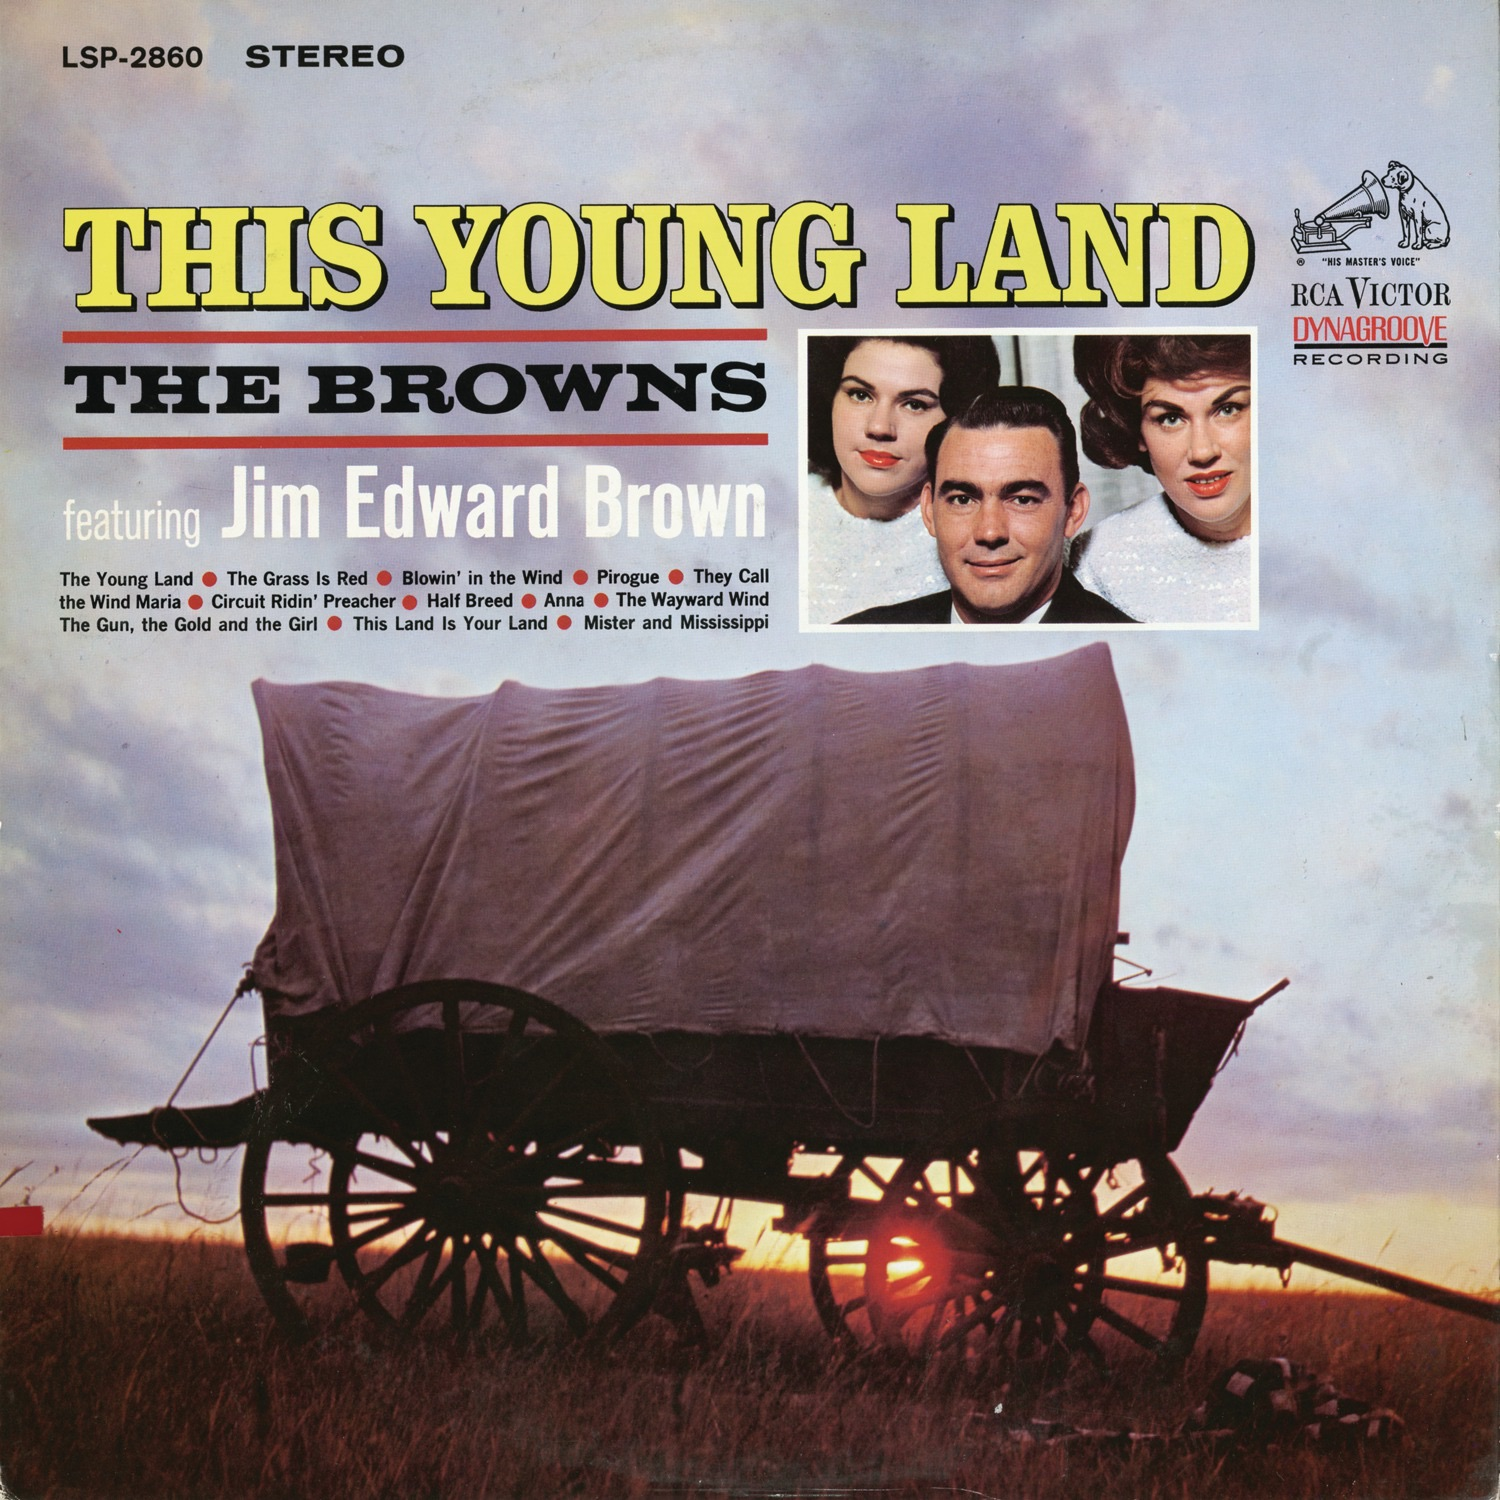 The Young Land (feat. Jim Edward Brown)